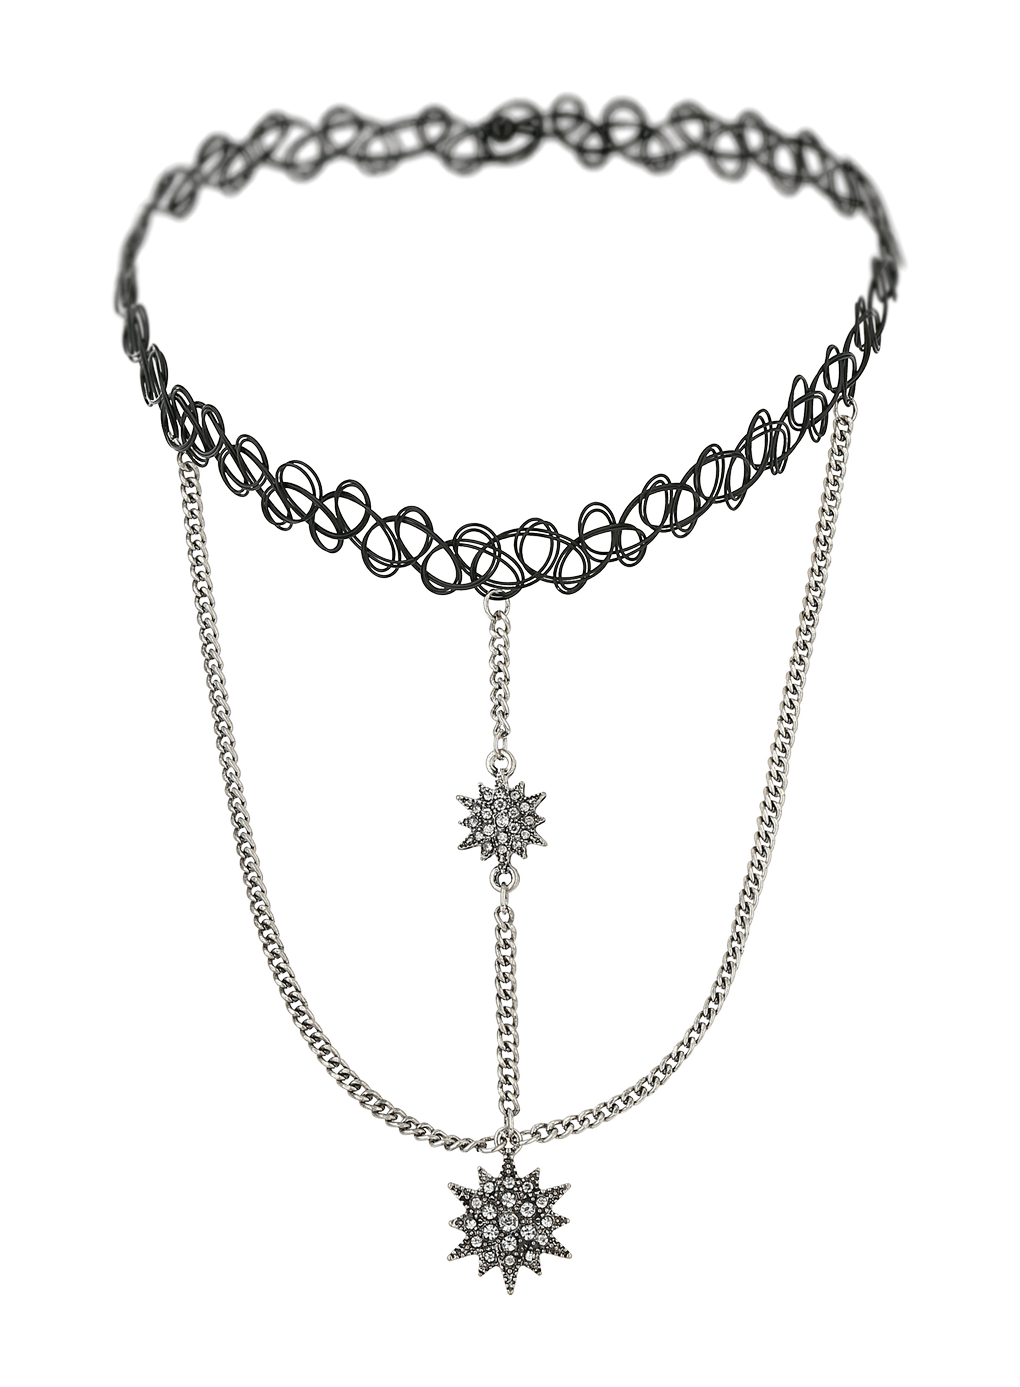 Choker drawing tattoo. Necklace jewellery transprent png